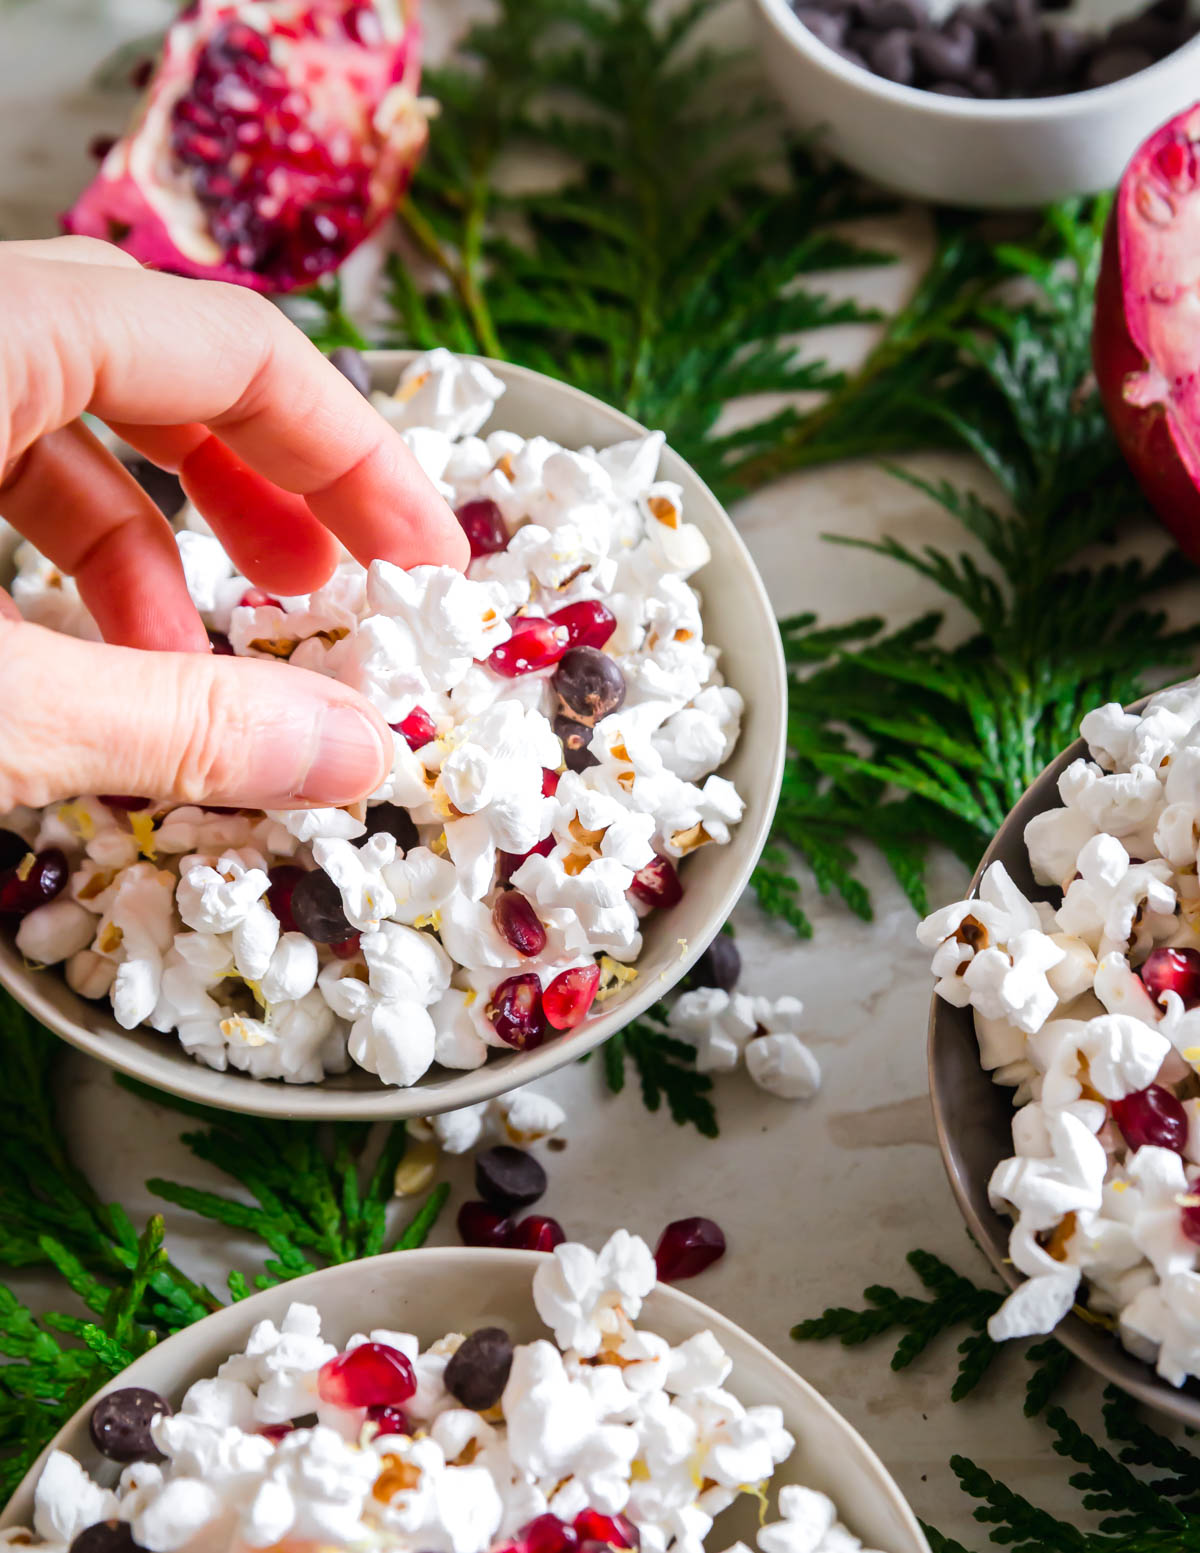 Give your popcorn snack a nutritious boost with some fresh pomegranate arils and lemon zest and a handful of chocolate chips for a bit of decadence!